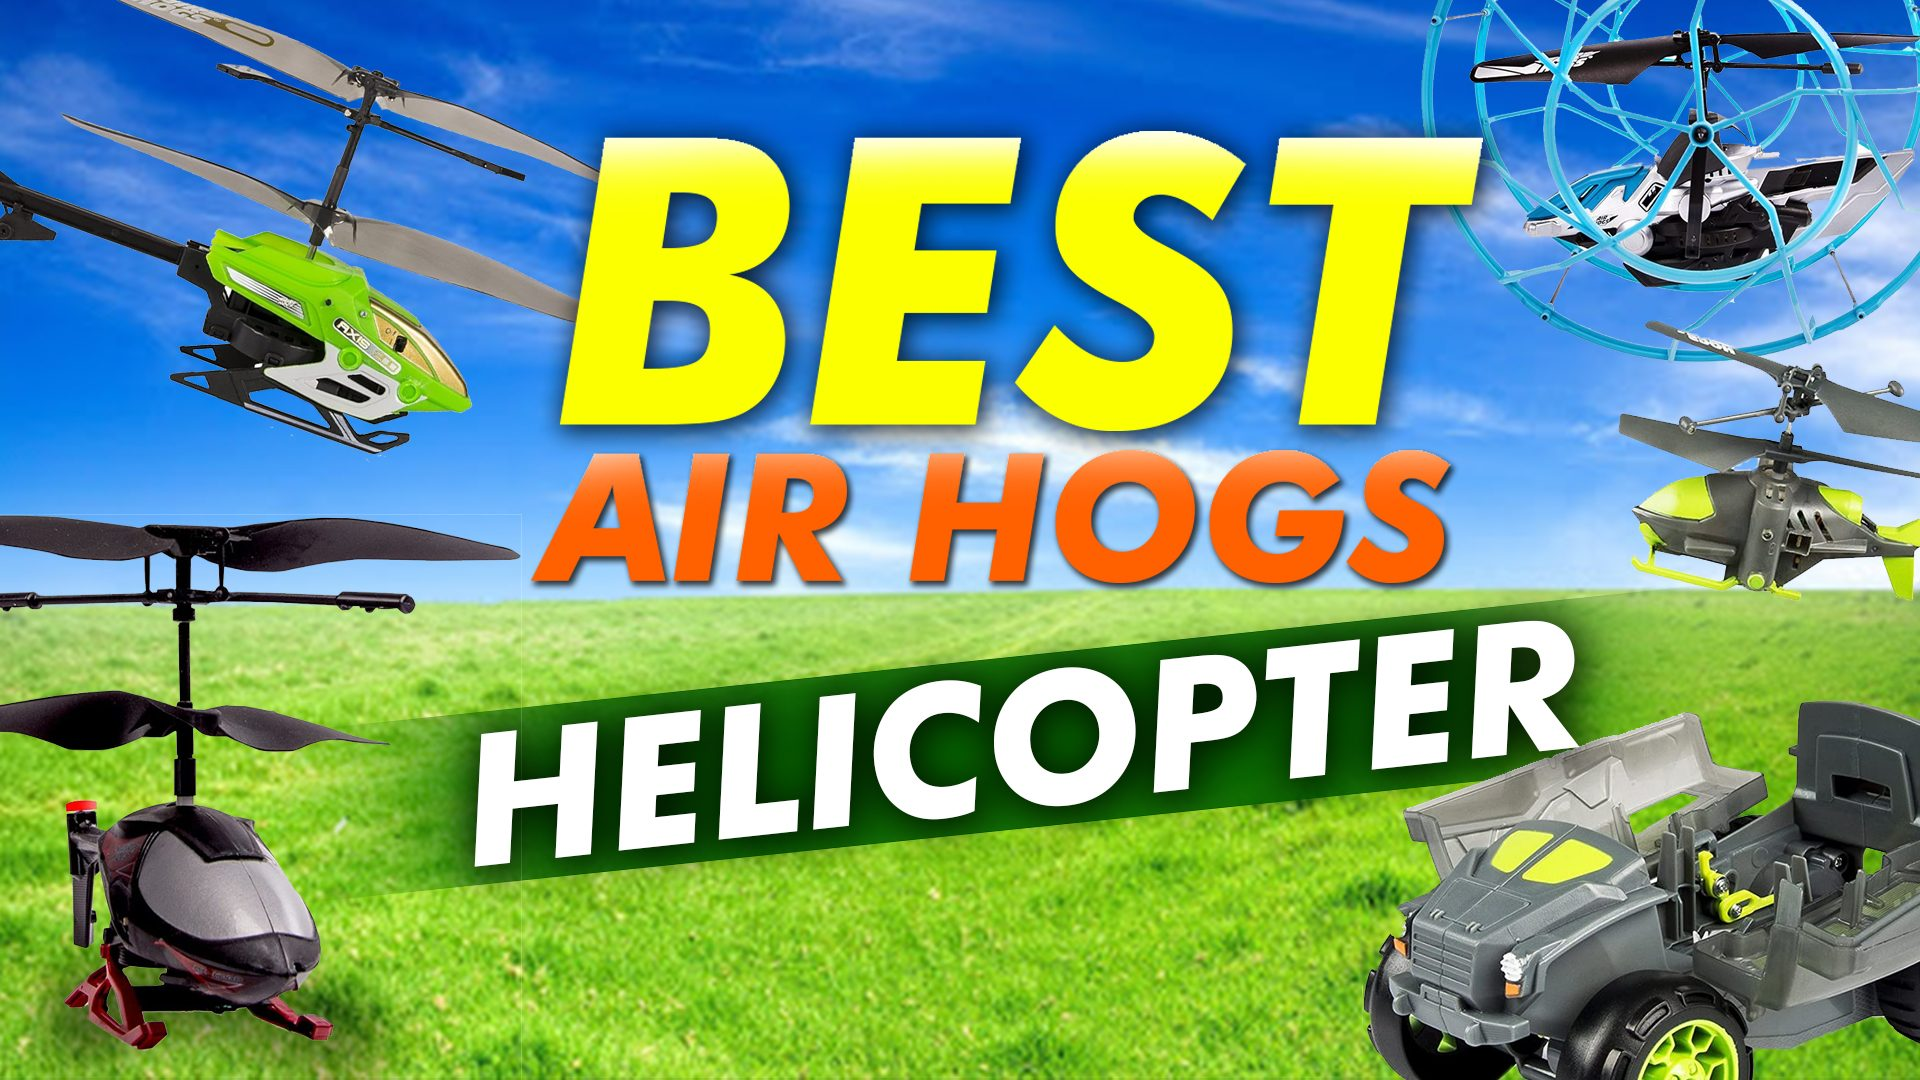 Best Air Hogs Helicopter – Buyer's Guide